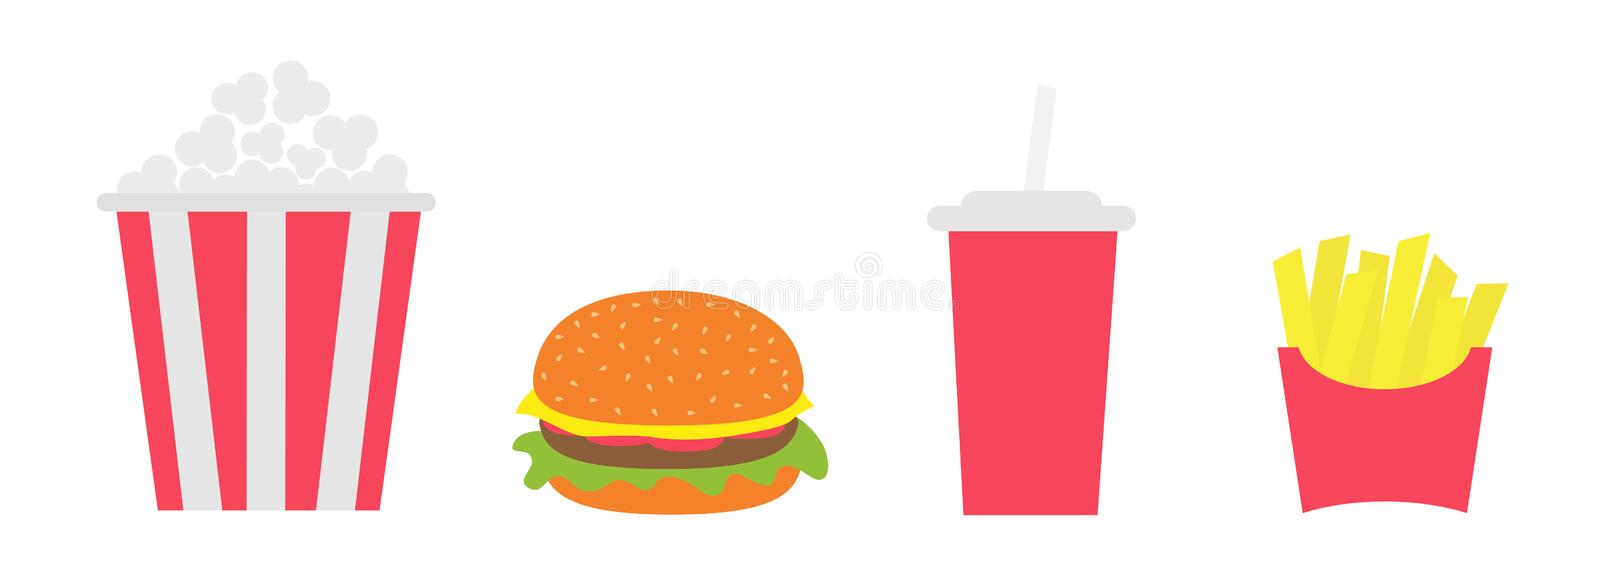 French fries potato in a paper wrapper box. Popcorn. Burger. Soda drink glass with straw. Fried potatoes. Icon set. Movie Cinema i. Con set. Fast food menu. Flat stock illustration